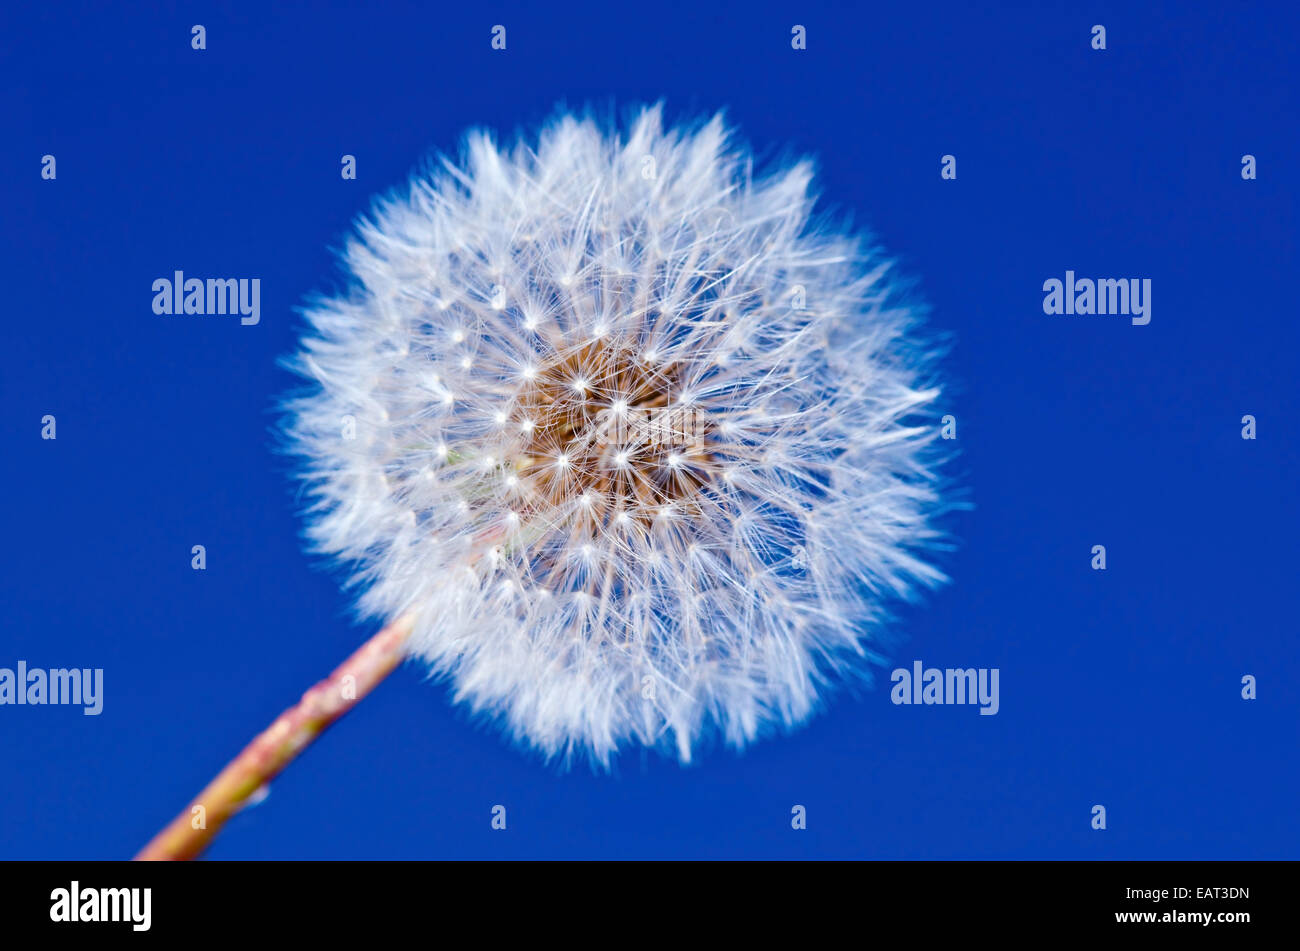 Dandelion flower on blue sky background - Stock Image